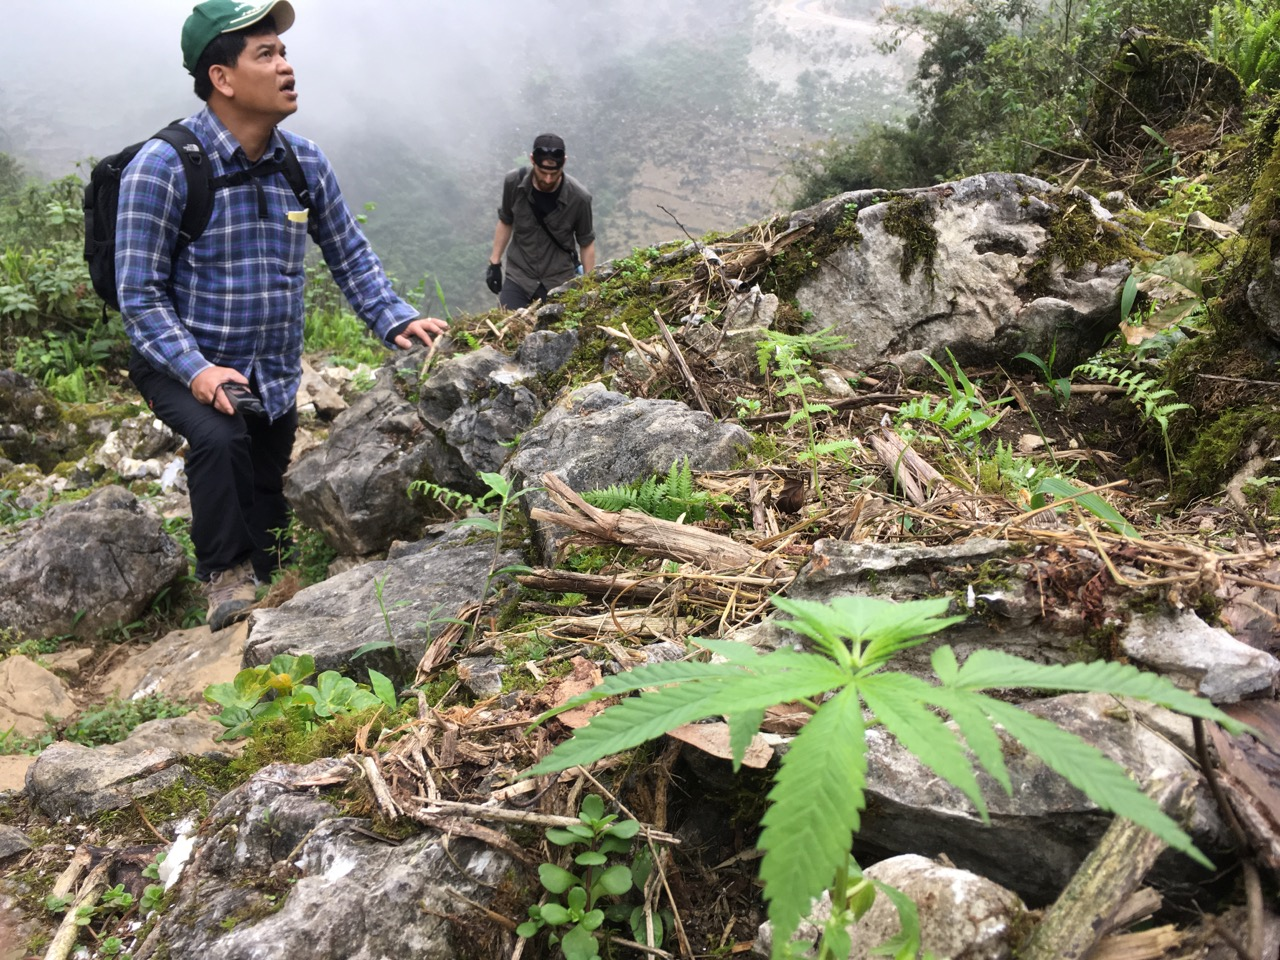 Quang and Thomas high on a steep, limestone-boulder-strewn slope newly cleared for planting crops.